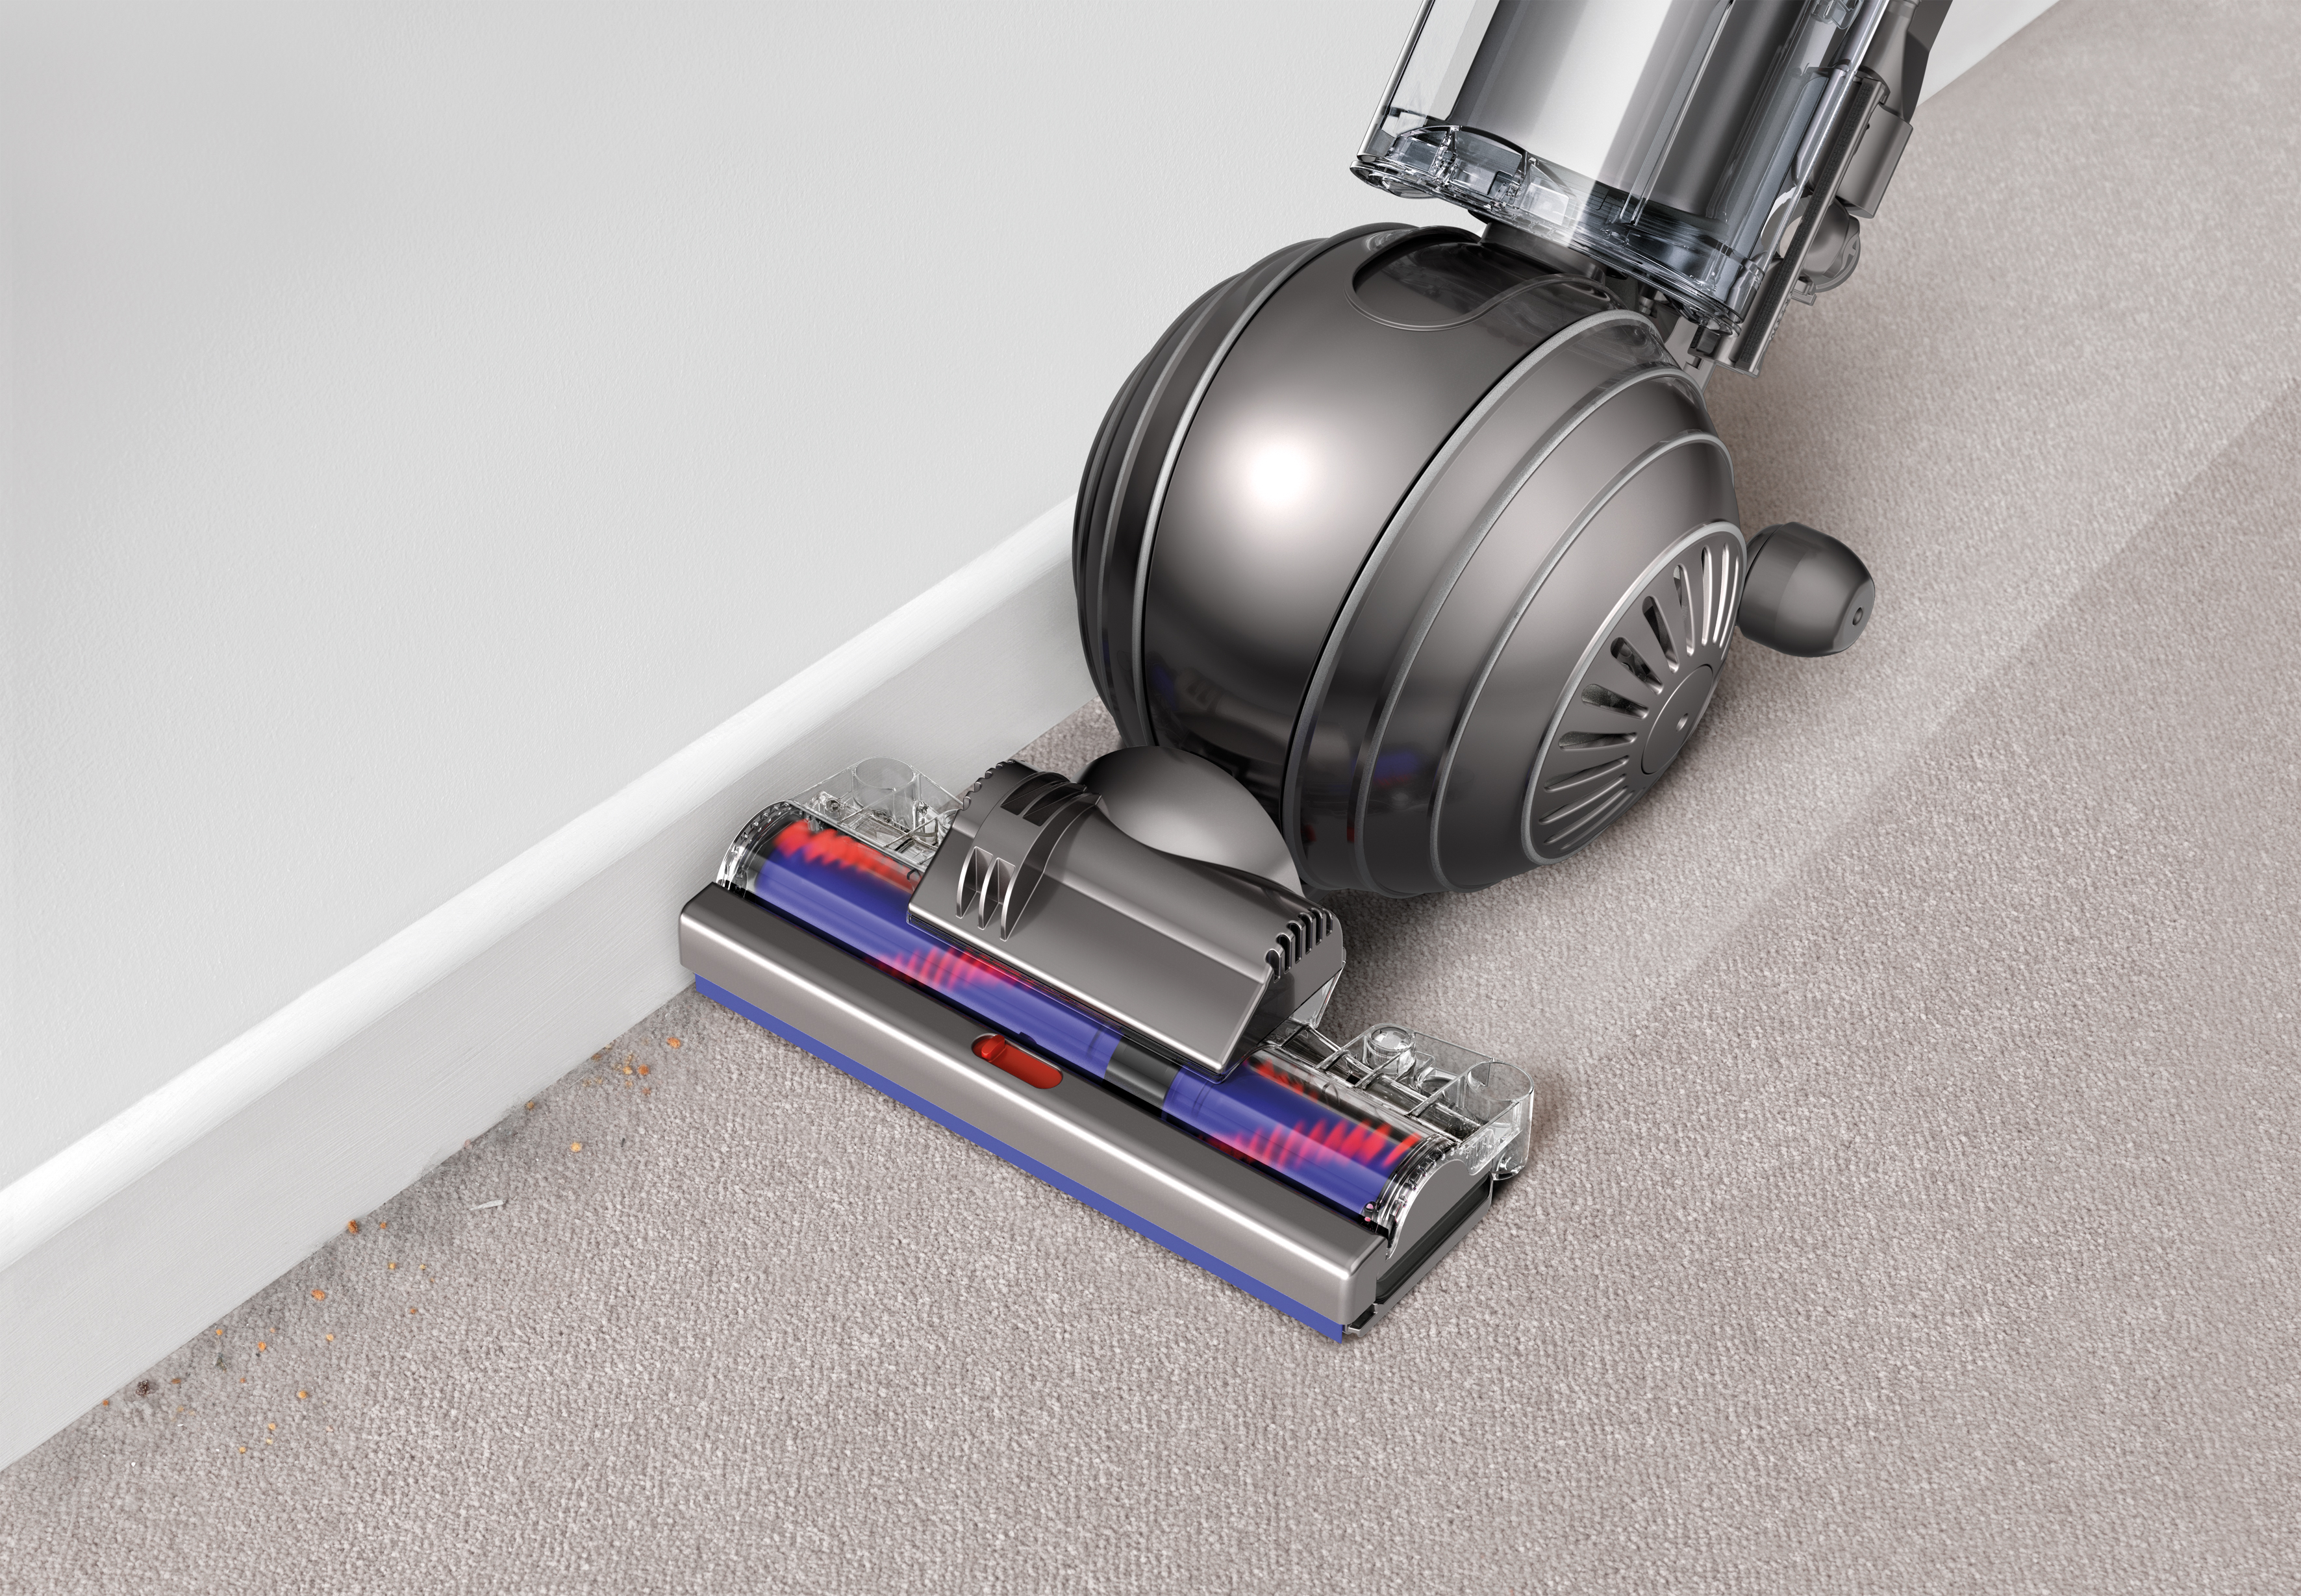 i put the vacuum to the test throughout the house and it works like a champ multiple attachments makes it easy to vacuum ceilings furniture stairs - Dyson Cinetic